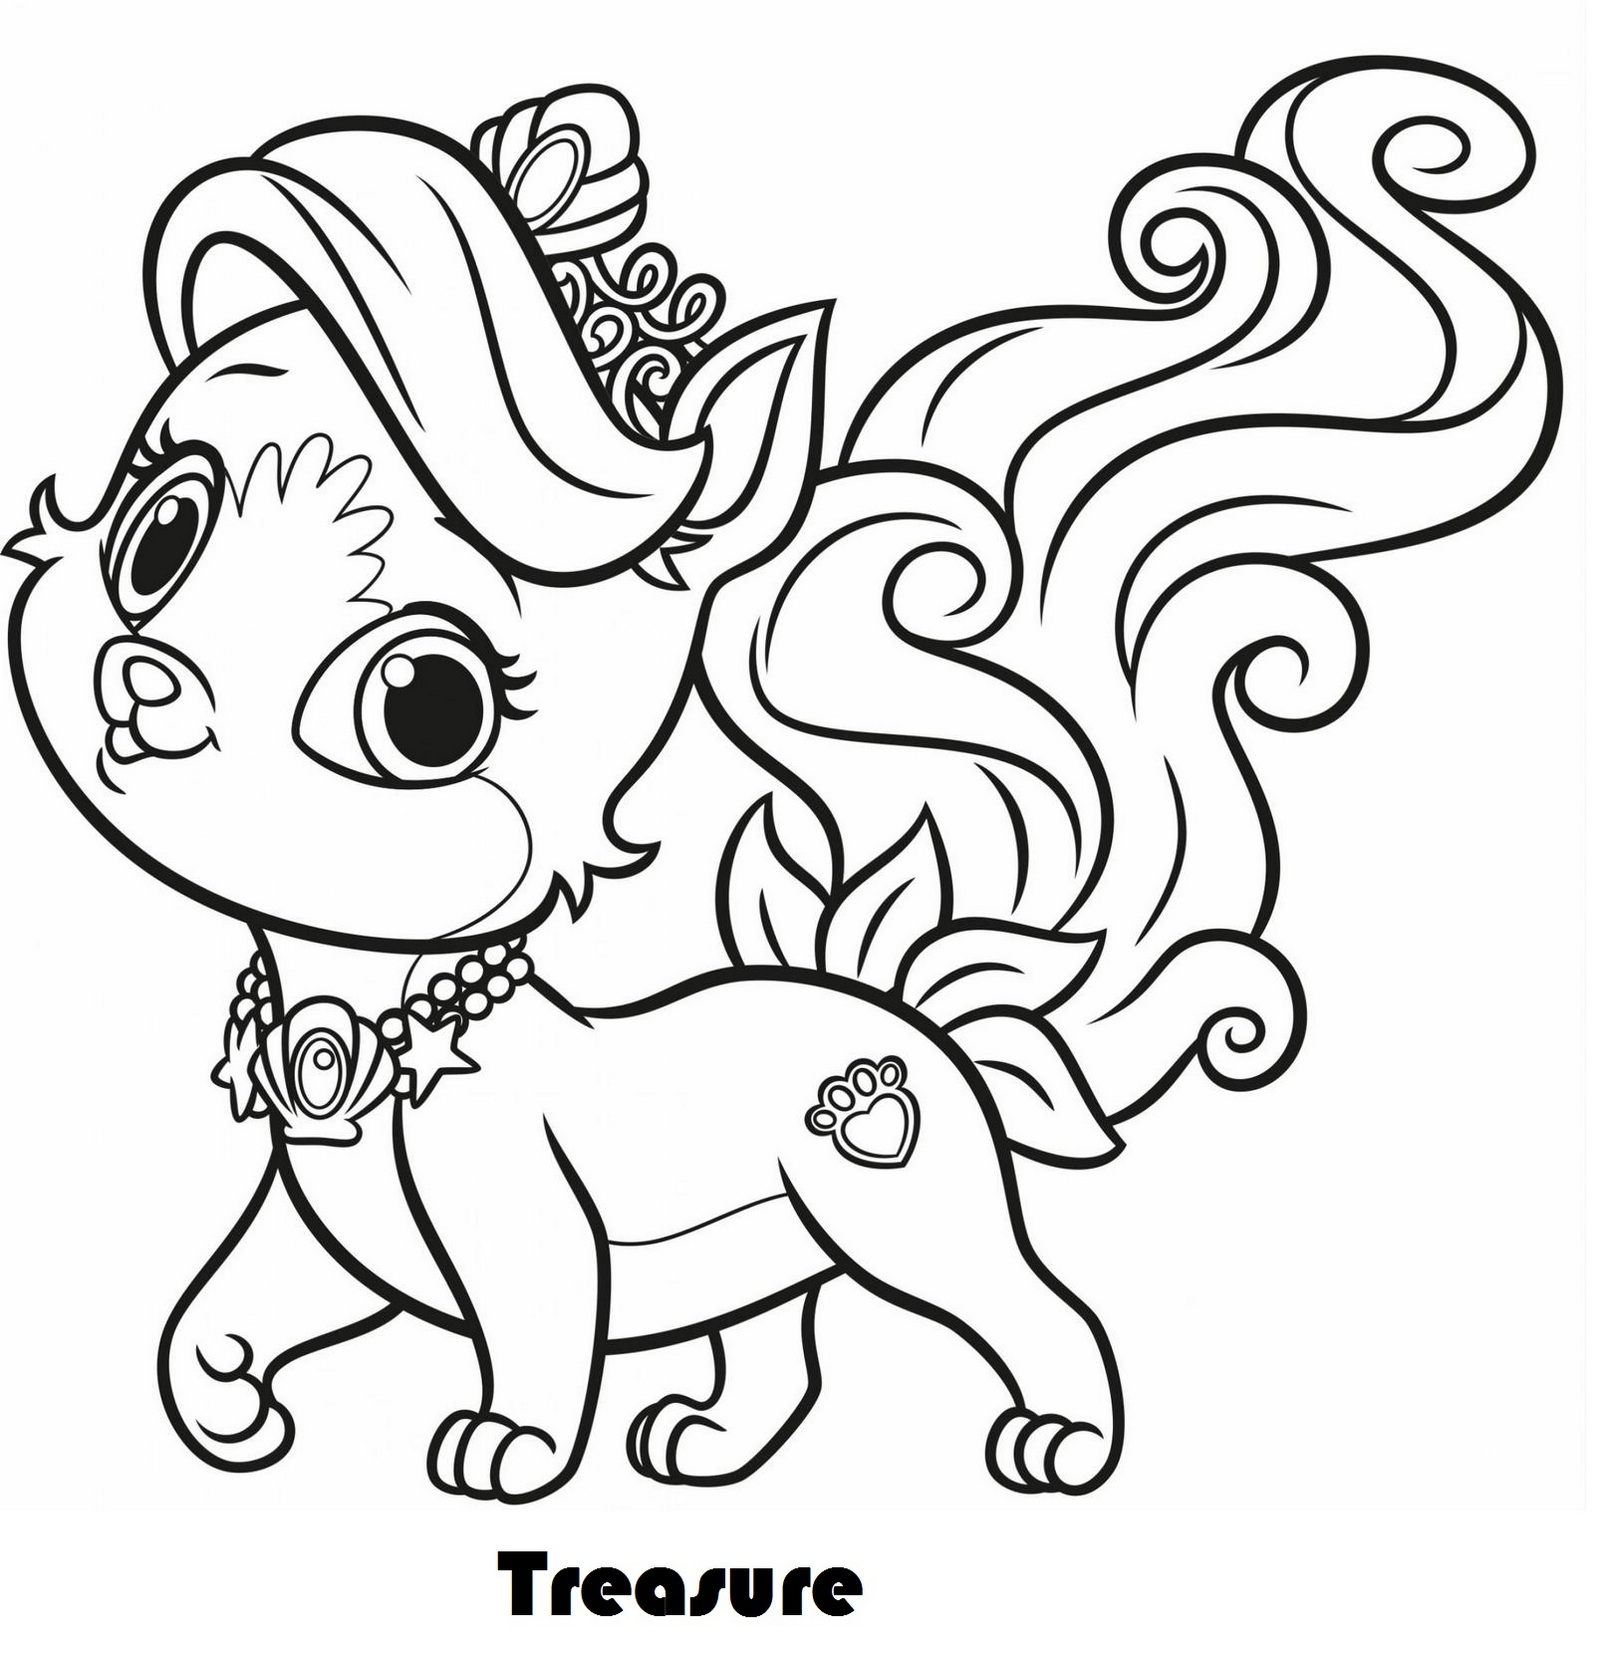 Treasure From Palace Pets Coloring Pages